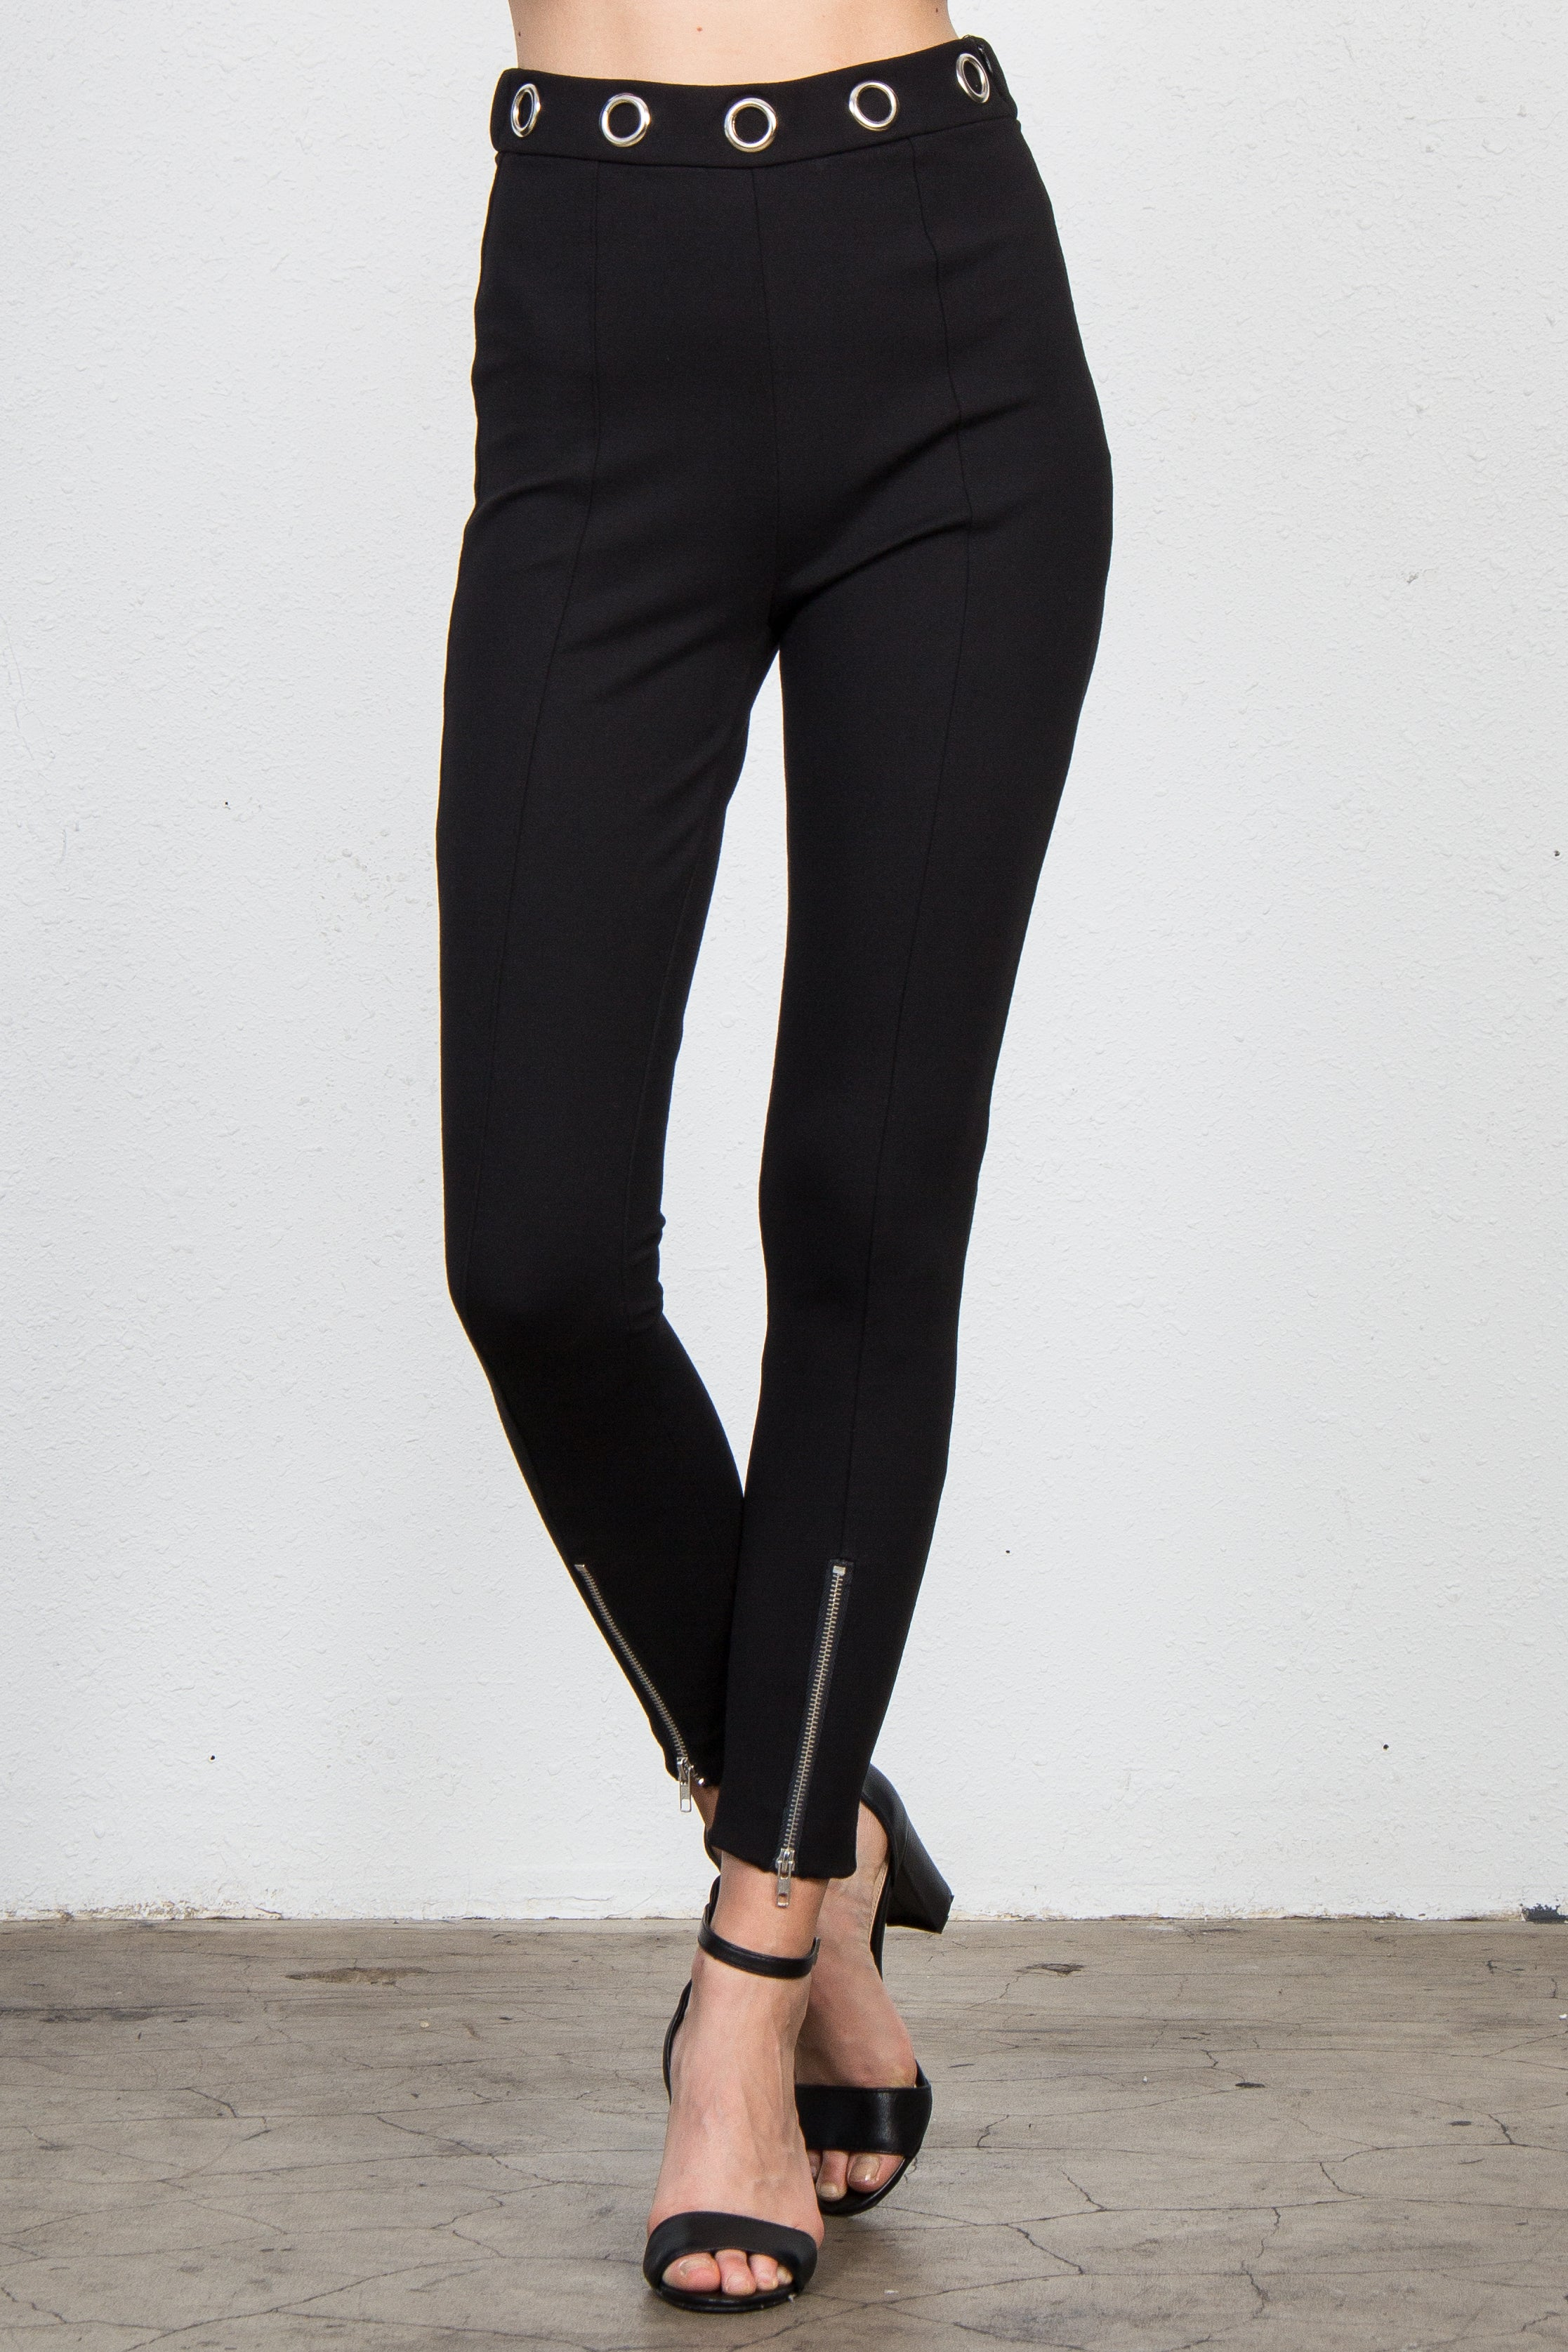 Leggings with Metal Grommets & Zipper Front